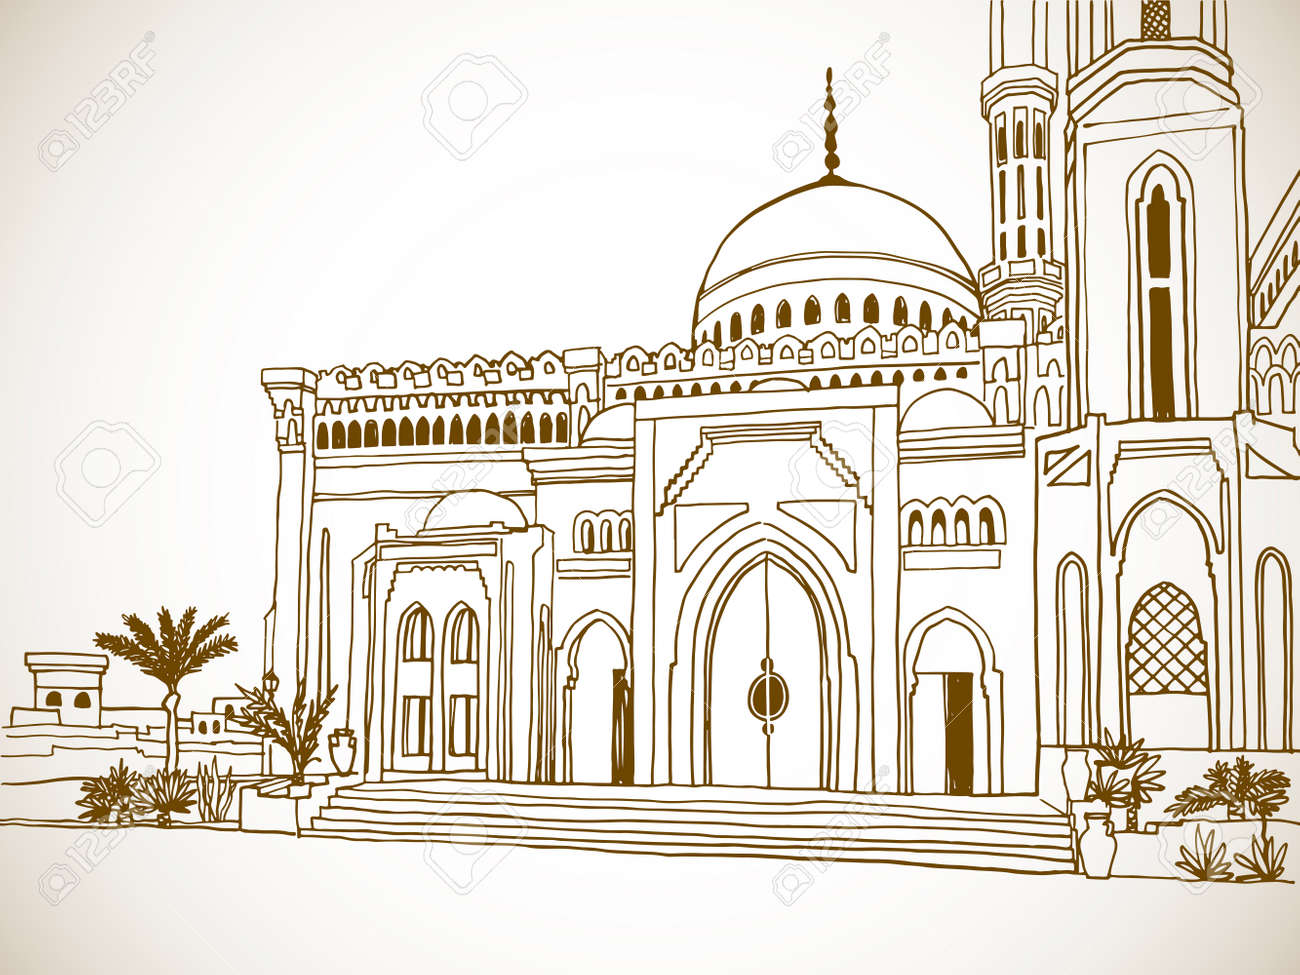 Beautiful muslim mosque in Egypt. Nice Egyptian landscape. Hand drawn sketch. Sepia color Urban background. Vintage postcards style. - 170062886